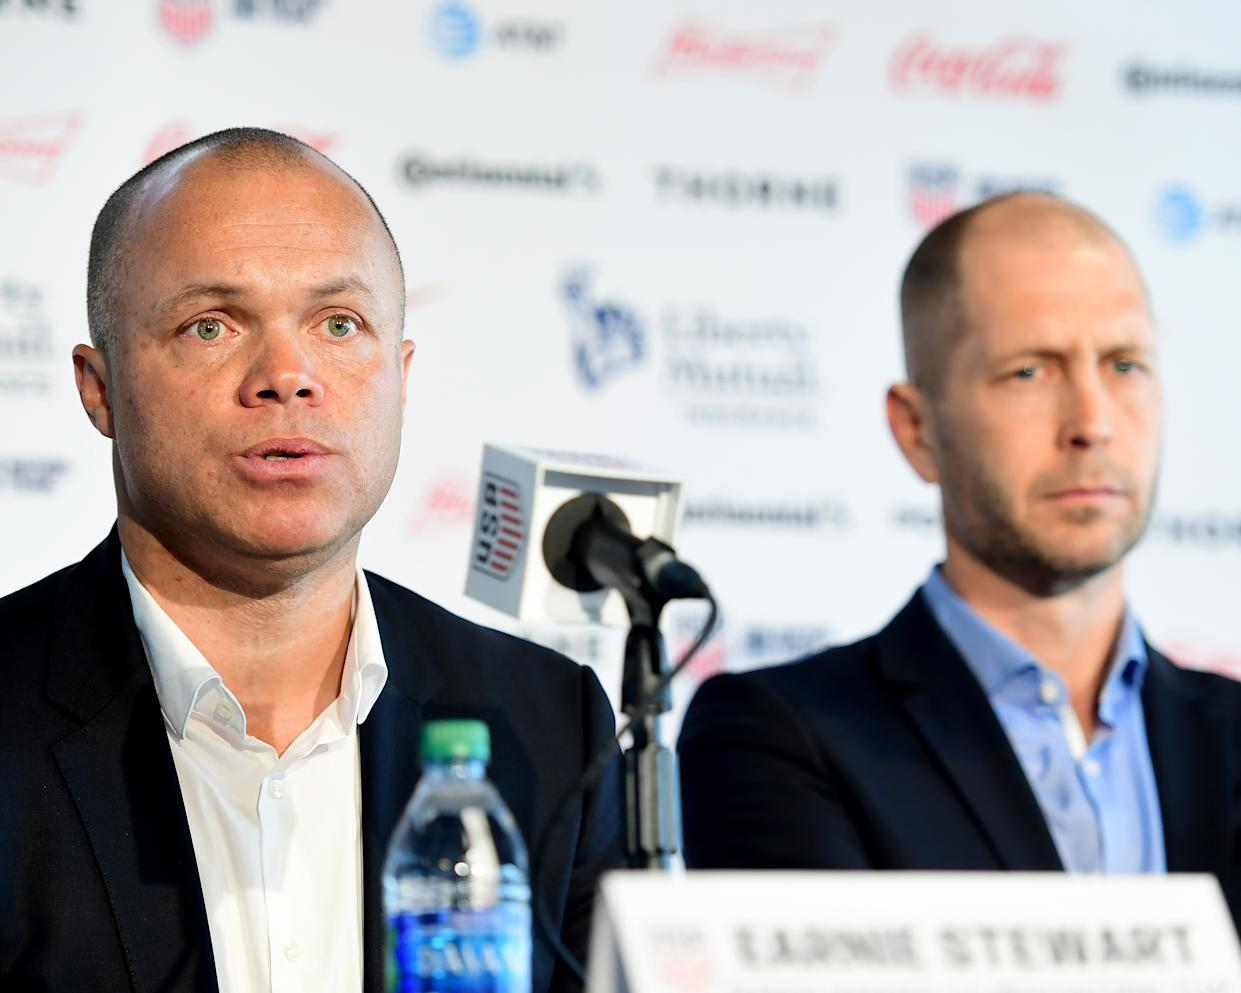 U.S. Soccer sporting director Earnie Stewart (left) and U.S. men's national team head coach Gregg Berhalter had both been involved in the planning of a January camp in Qatar. (Sarah Stier/Getty Images)